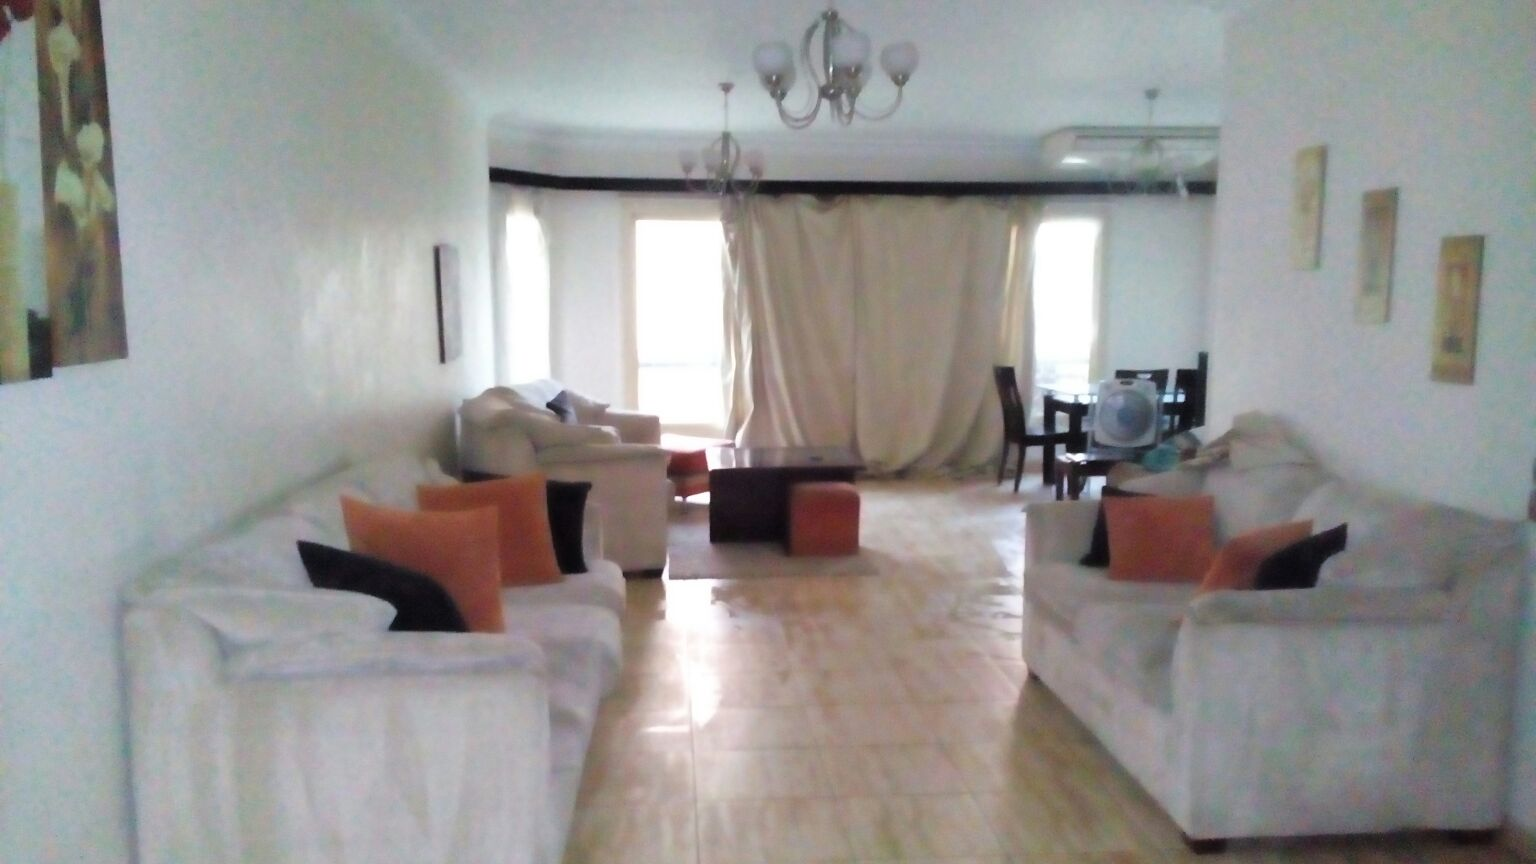 For sale apartment  Super Lux in Nargas Buildings Fifth settlement